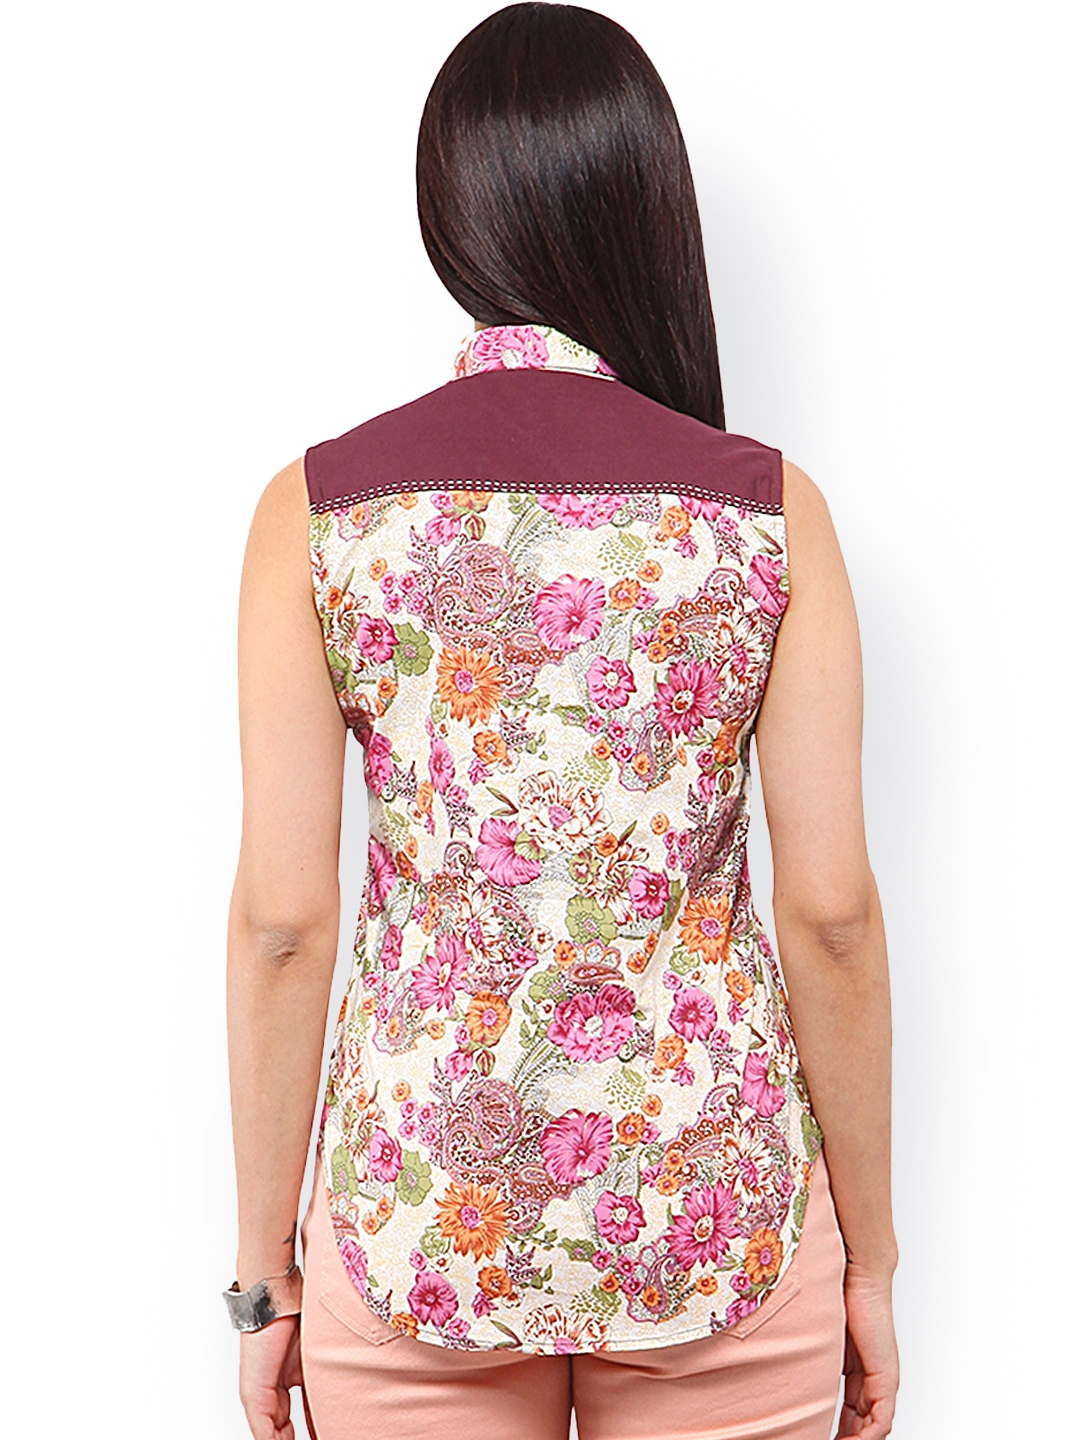 Myntra yepme women pink off white floral printed shirt for White floral shirt womens